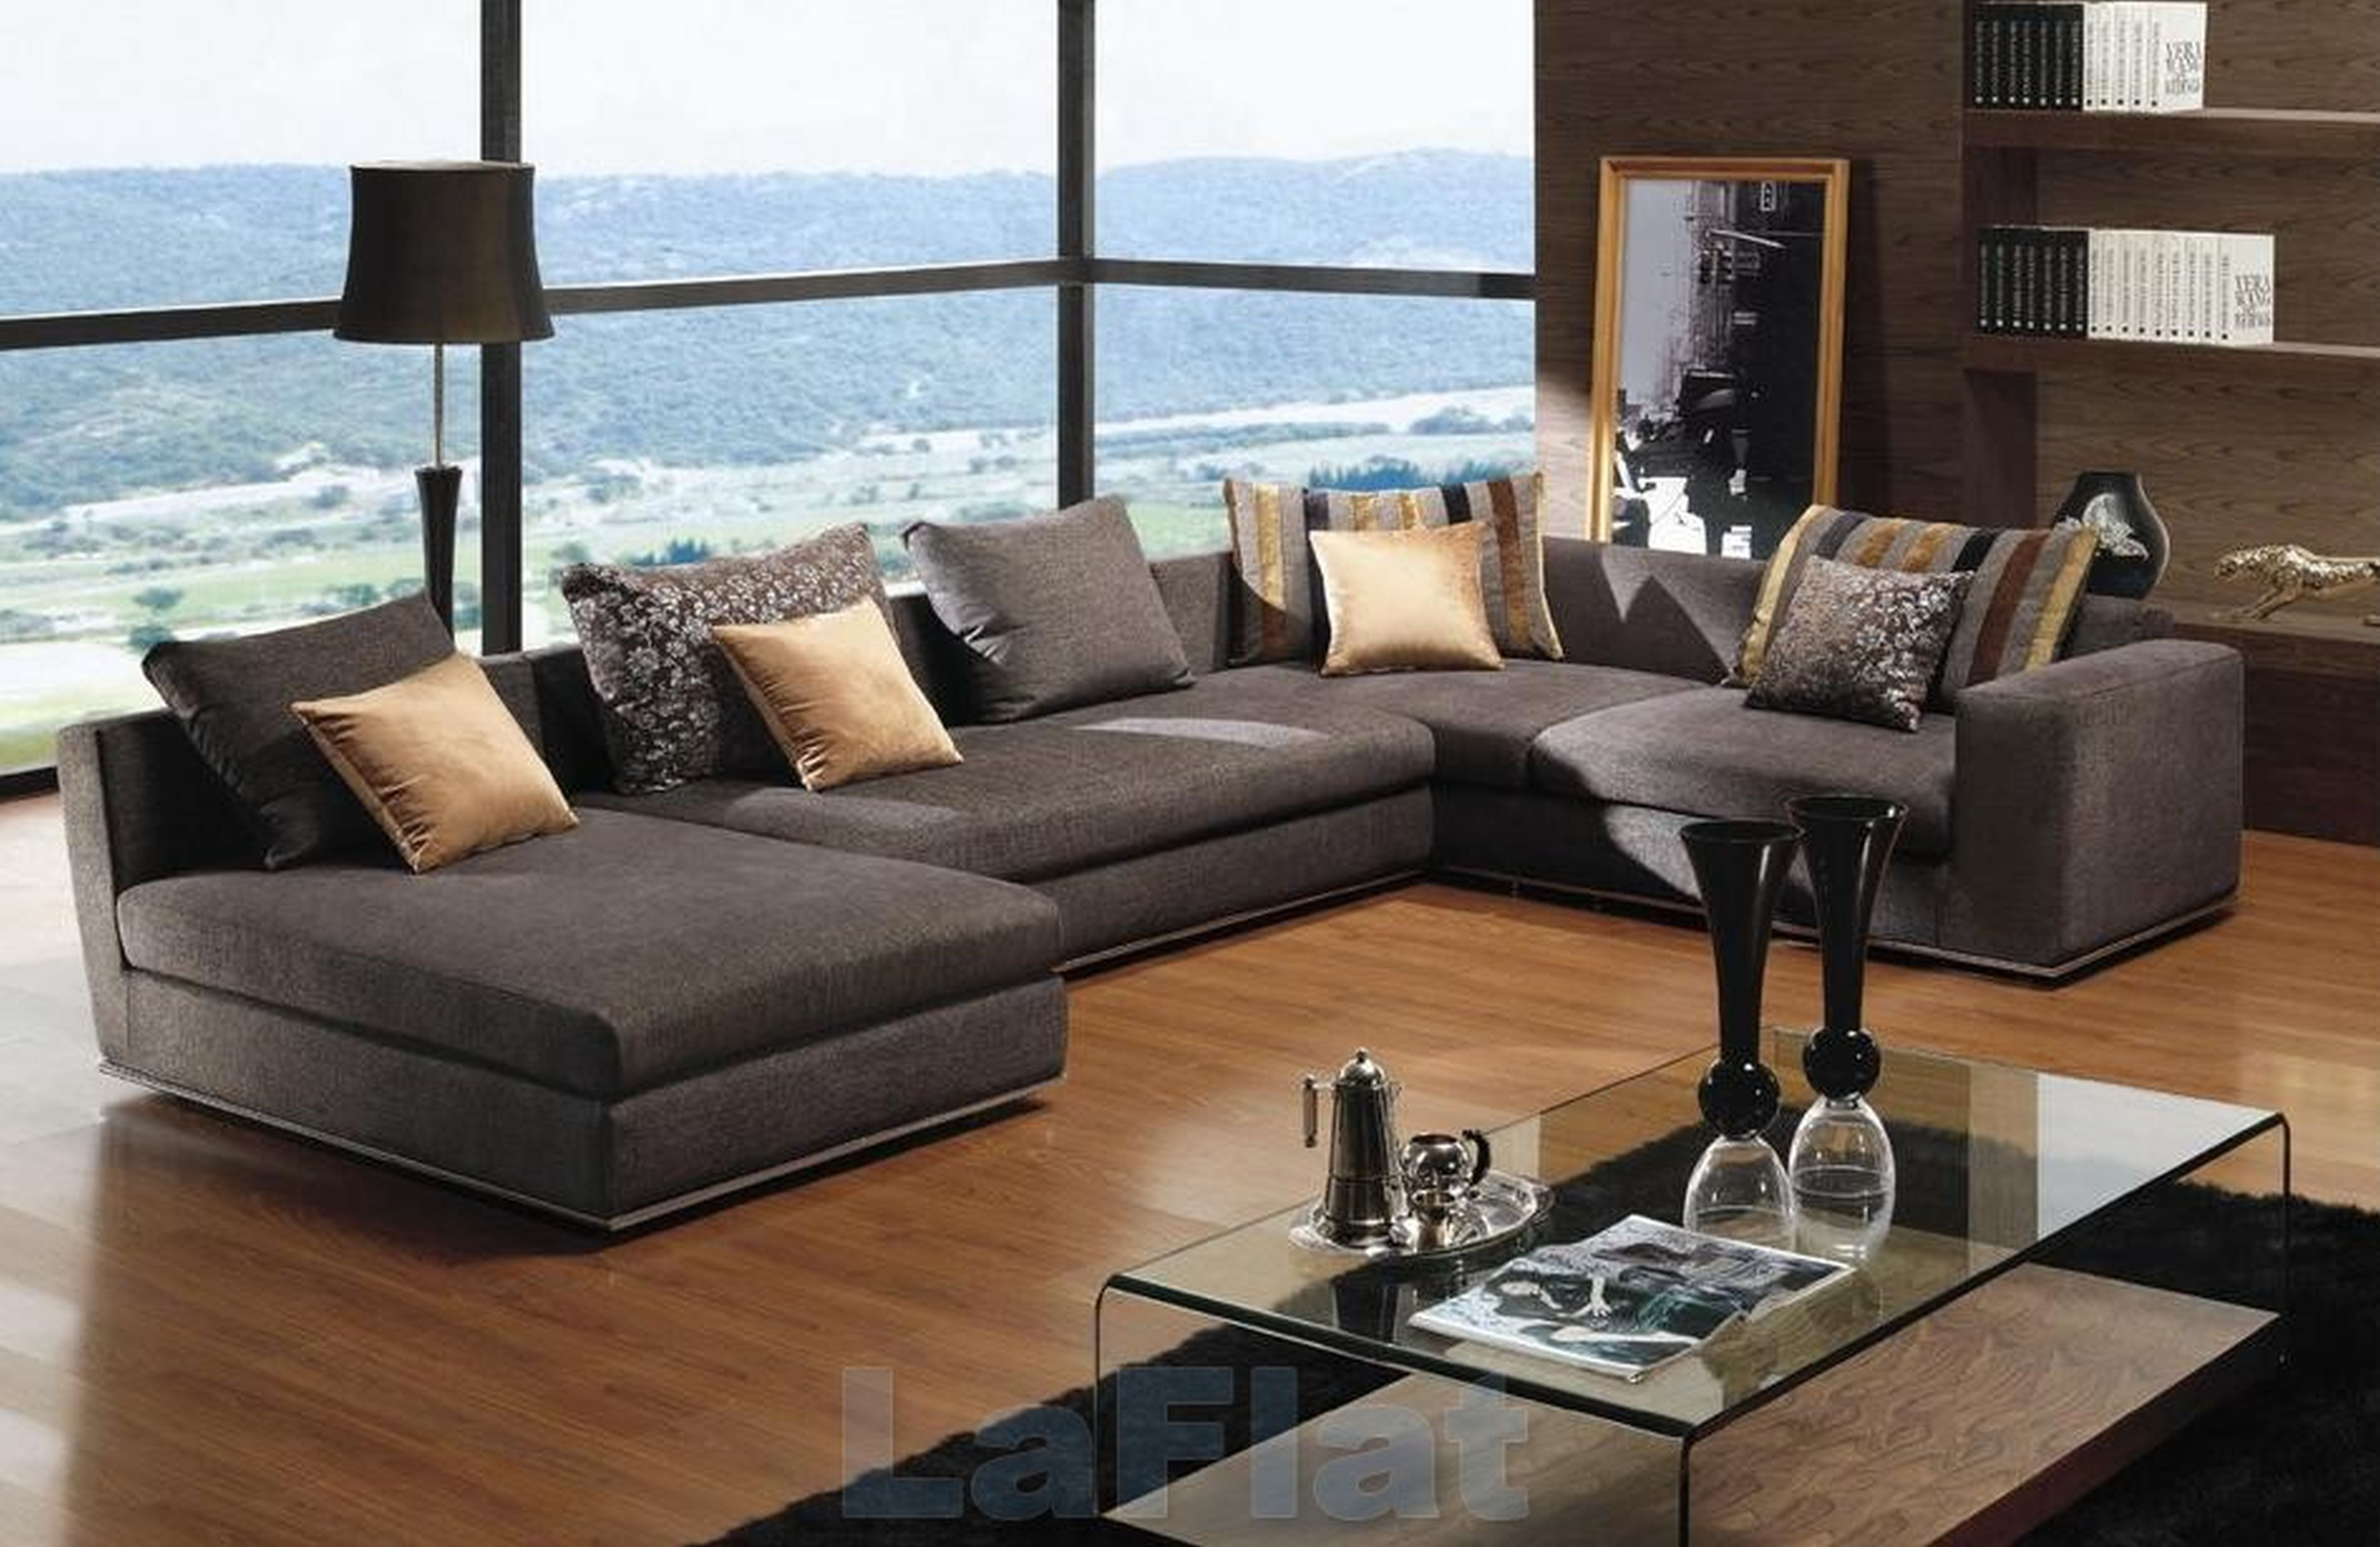 U Shaped Sectional Coffee Table Download Decorating Nice Modern Living Room Sofa Id Sectional Sofa With Chaise Modern Sofa Living Room Retro Modern Living Room